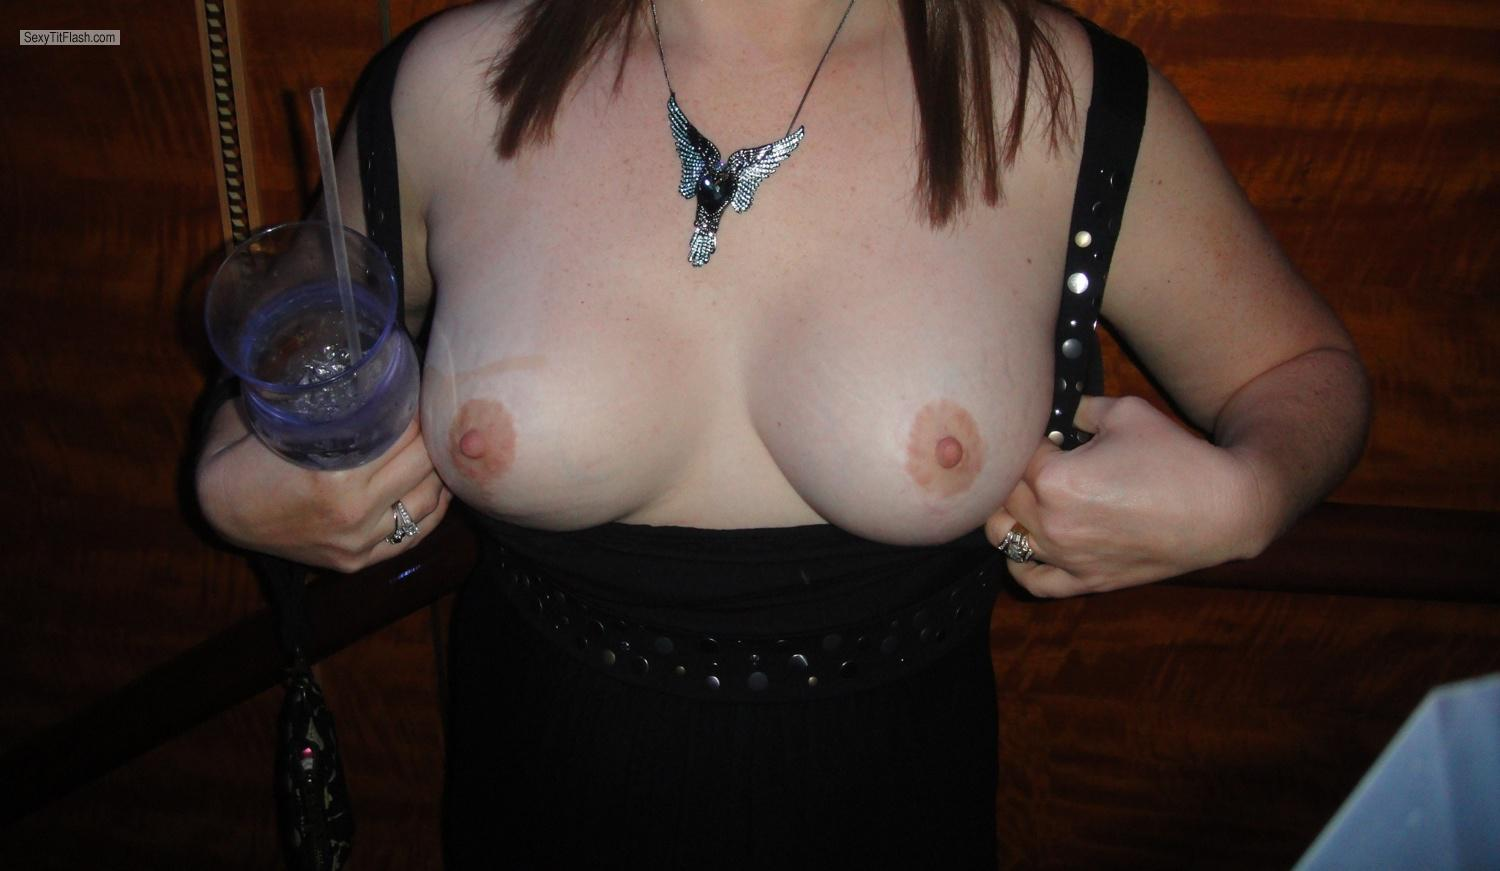 Tit Flash: Big Tits By IPhone - Sexy Milf from United States